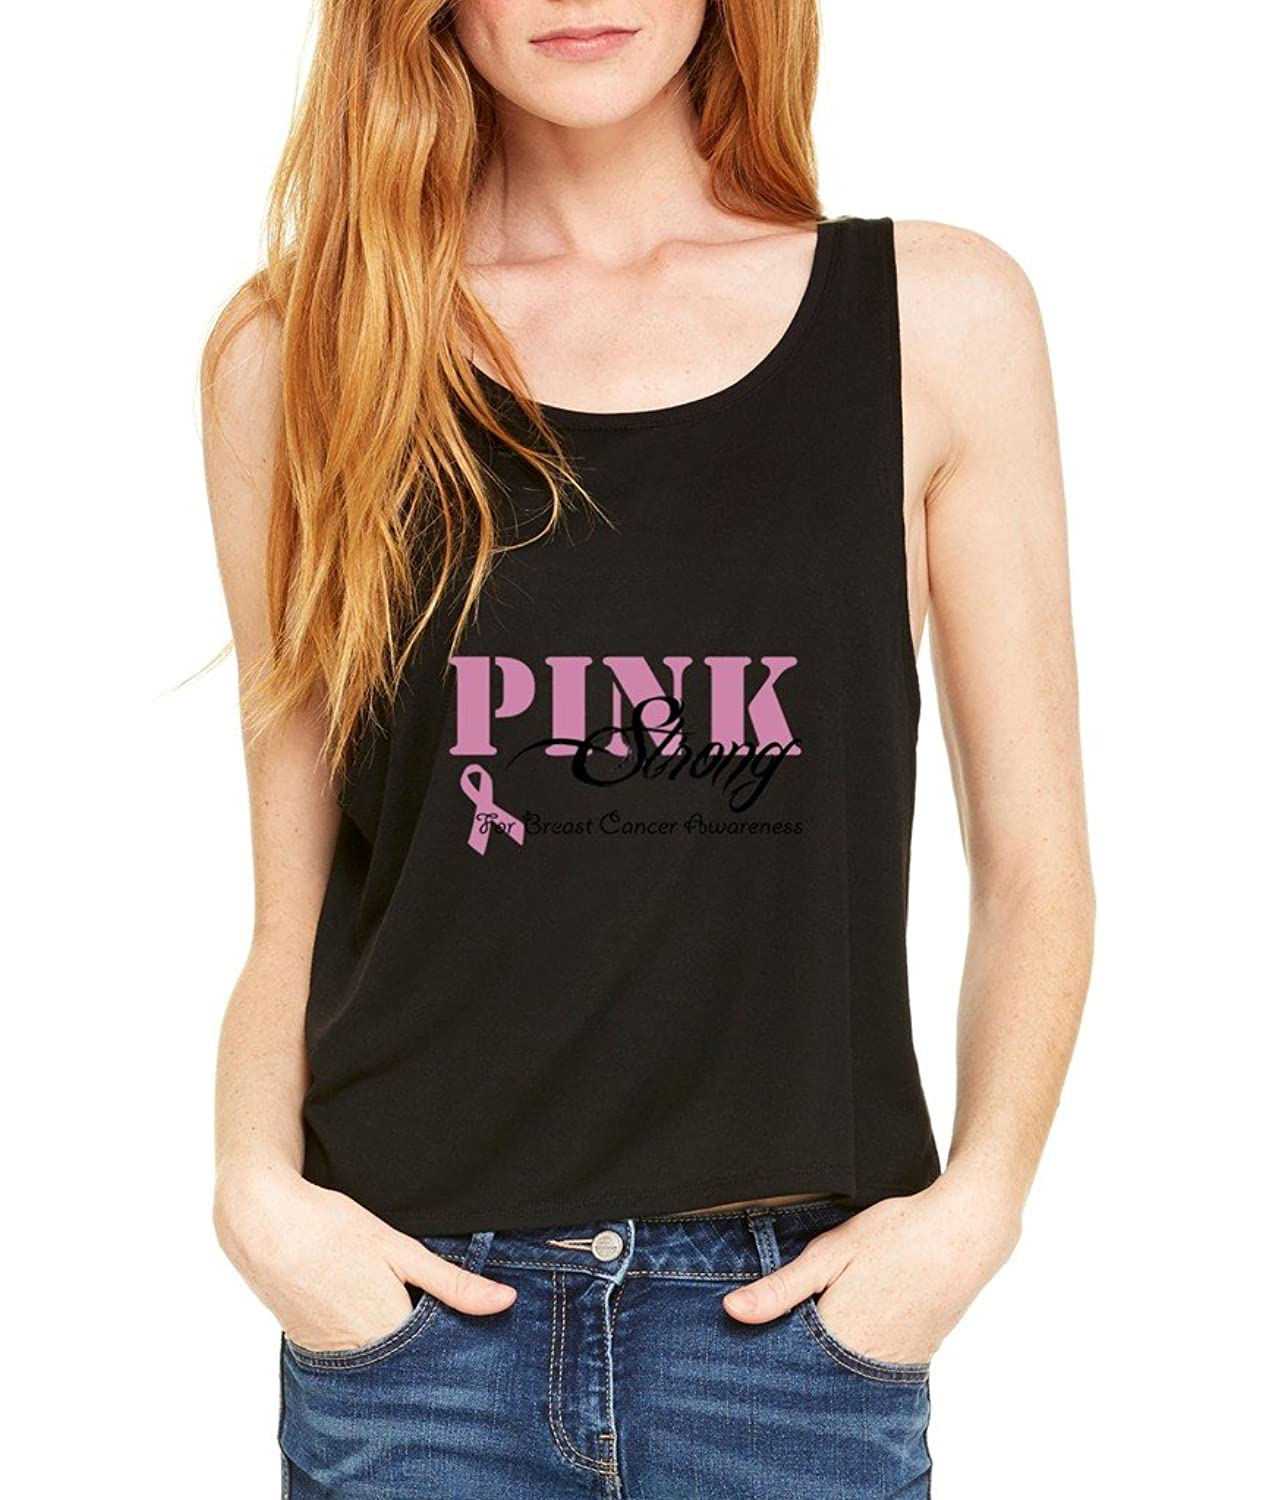 Together We Are Strong Pink Boxy Tank Top Breast Cancer Awareness Flowy Shirt Large/XL Black b23